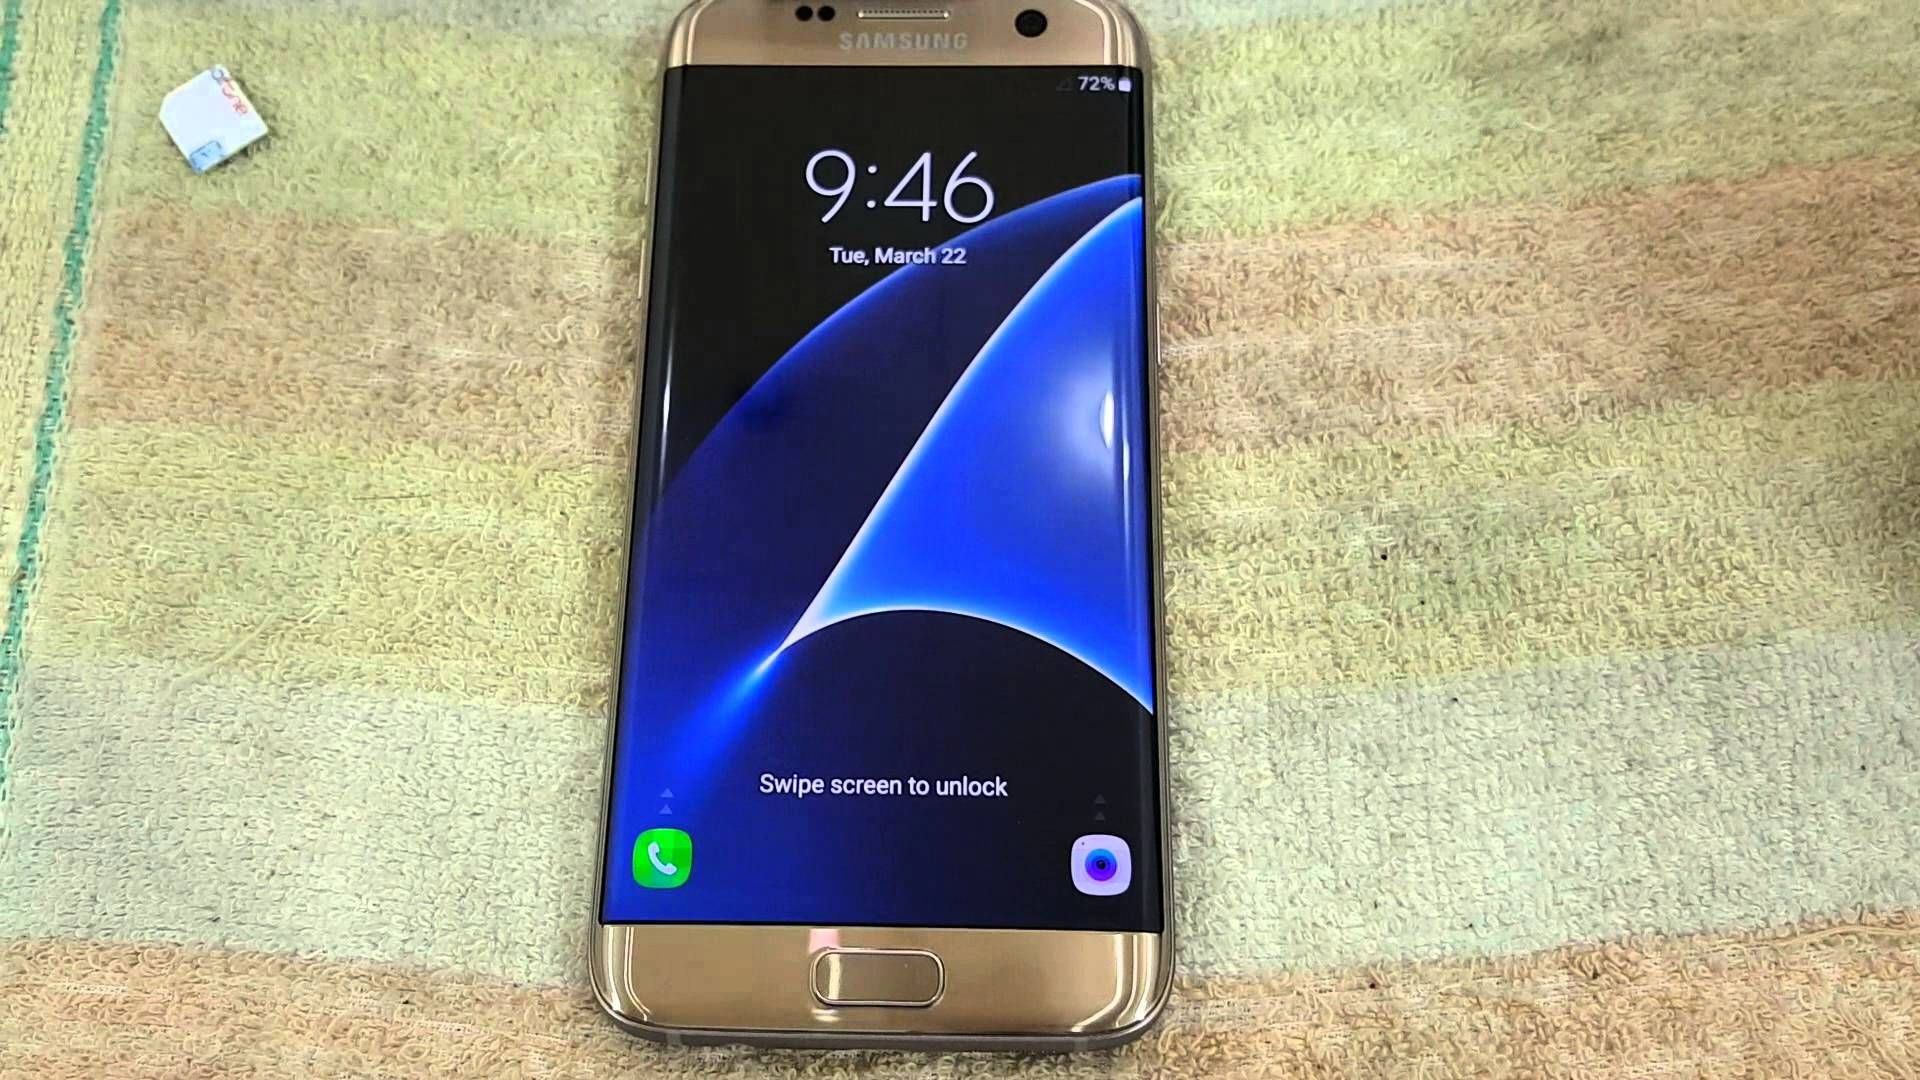 Samsung galaxy s7 edge olympic edition will unveil on july 7 mobile - Hot News Being Unlocked Samsung Galaxy Edge Sprint Successfully We Did Unlock Gsm Samsung Galaxy Edge Via Remotely You Can Use T Mobile At T Sim